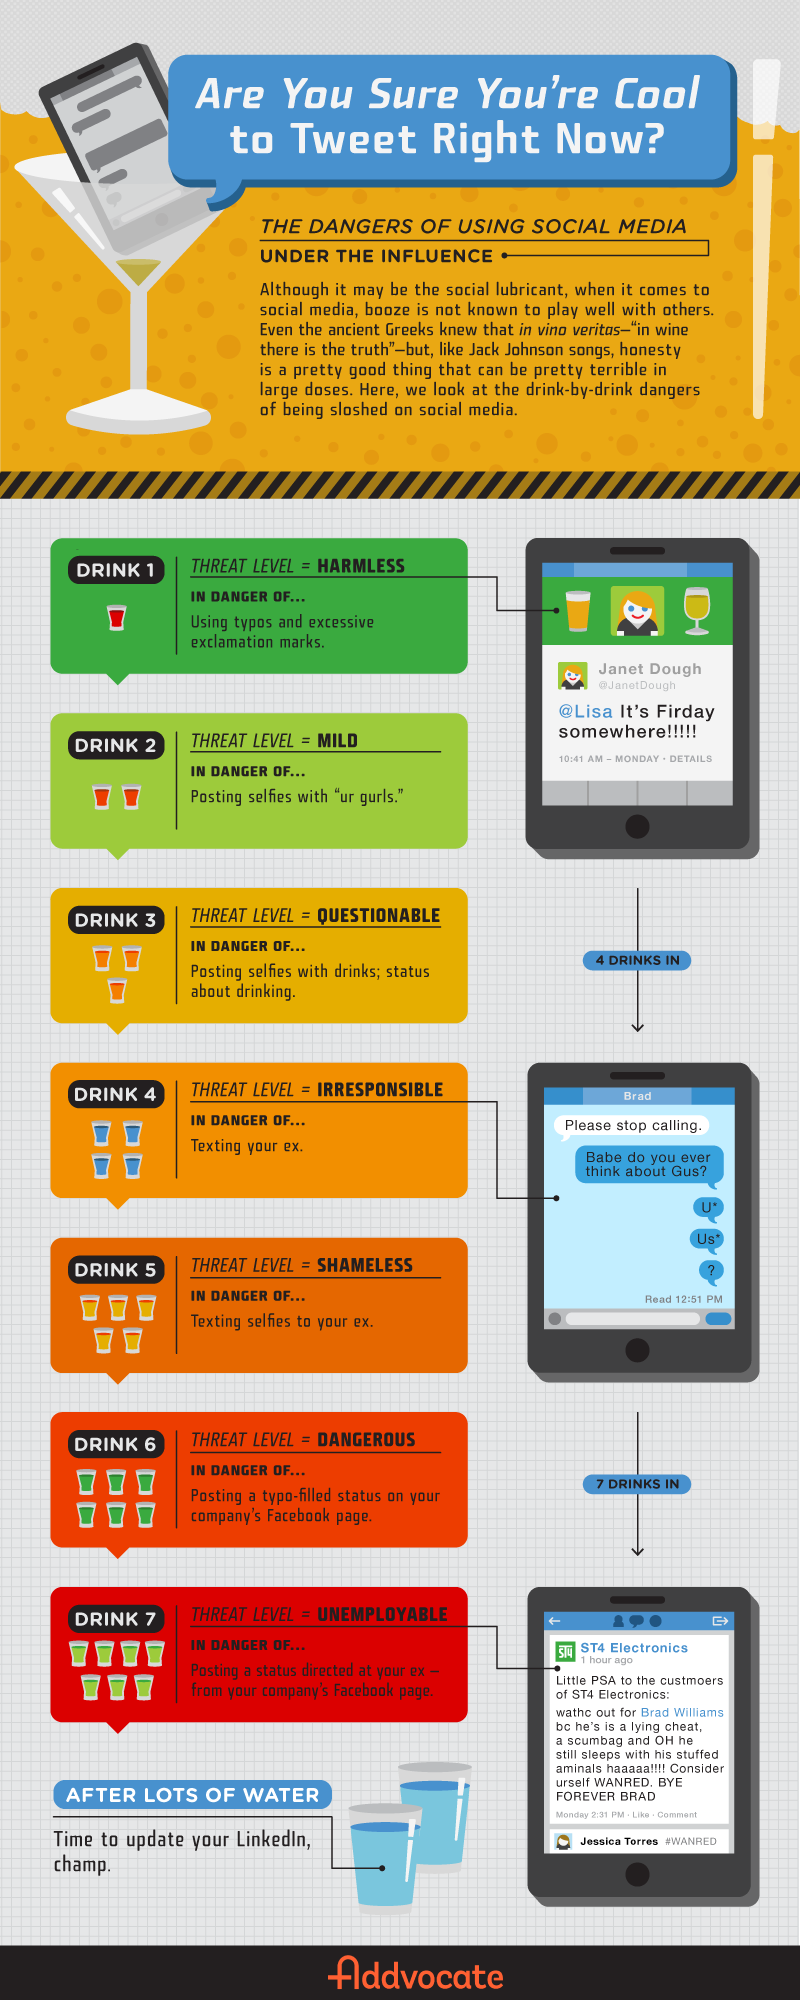 Are You Sure You're Cool To Tweet Right Now? The Dangers of Using Social Media Under the Influence infographic